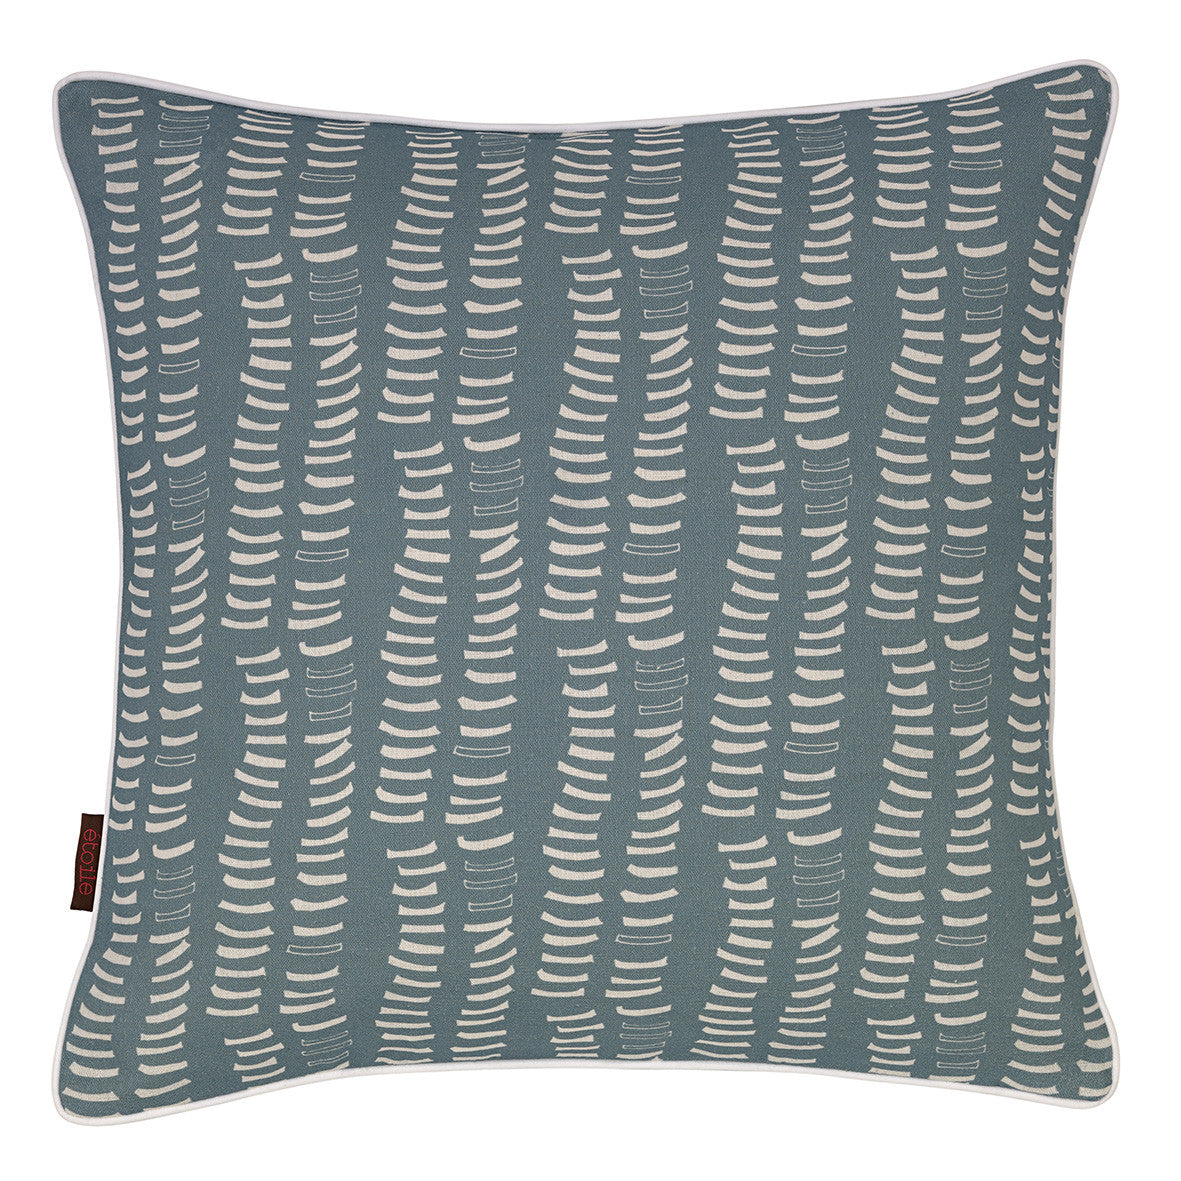 Graphic Adams Rib Pattern Linen Union Printed Cushion in Light Chambray Blue and White